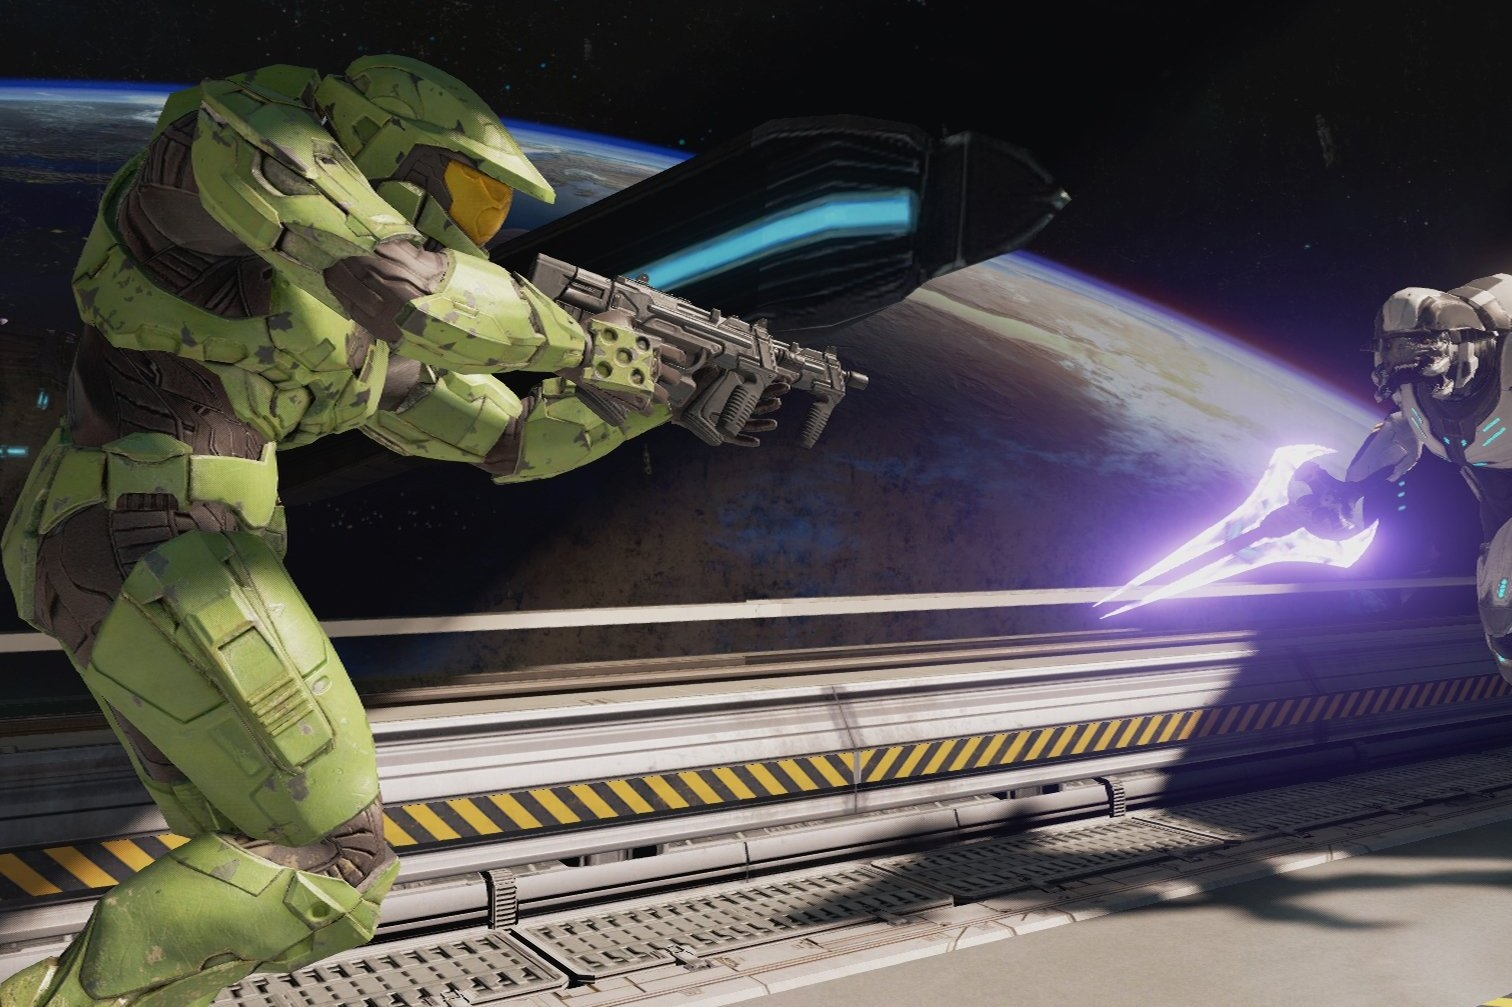 Addresses ongoing Halo MCC Matchmaking issues